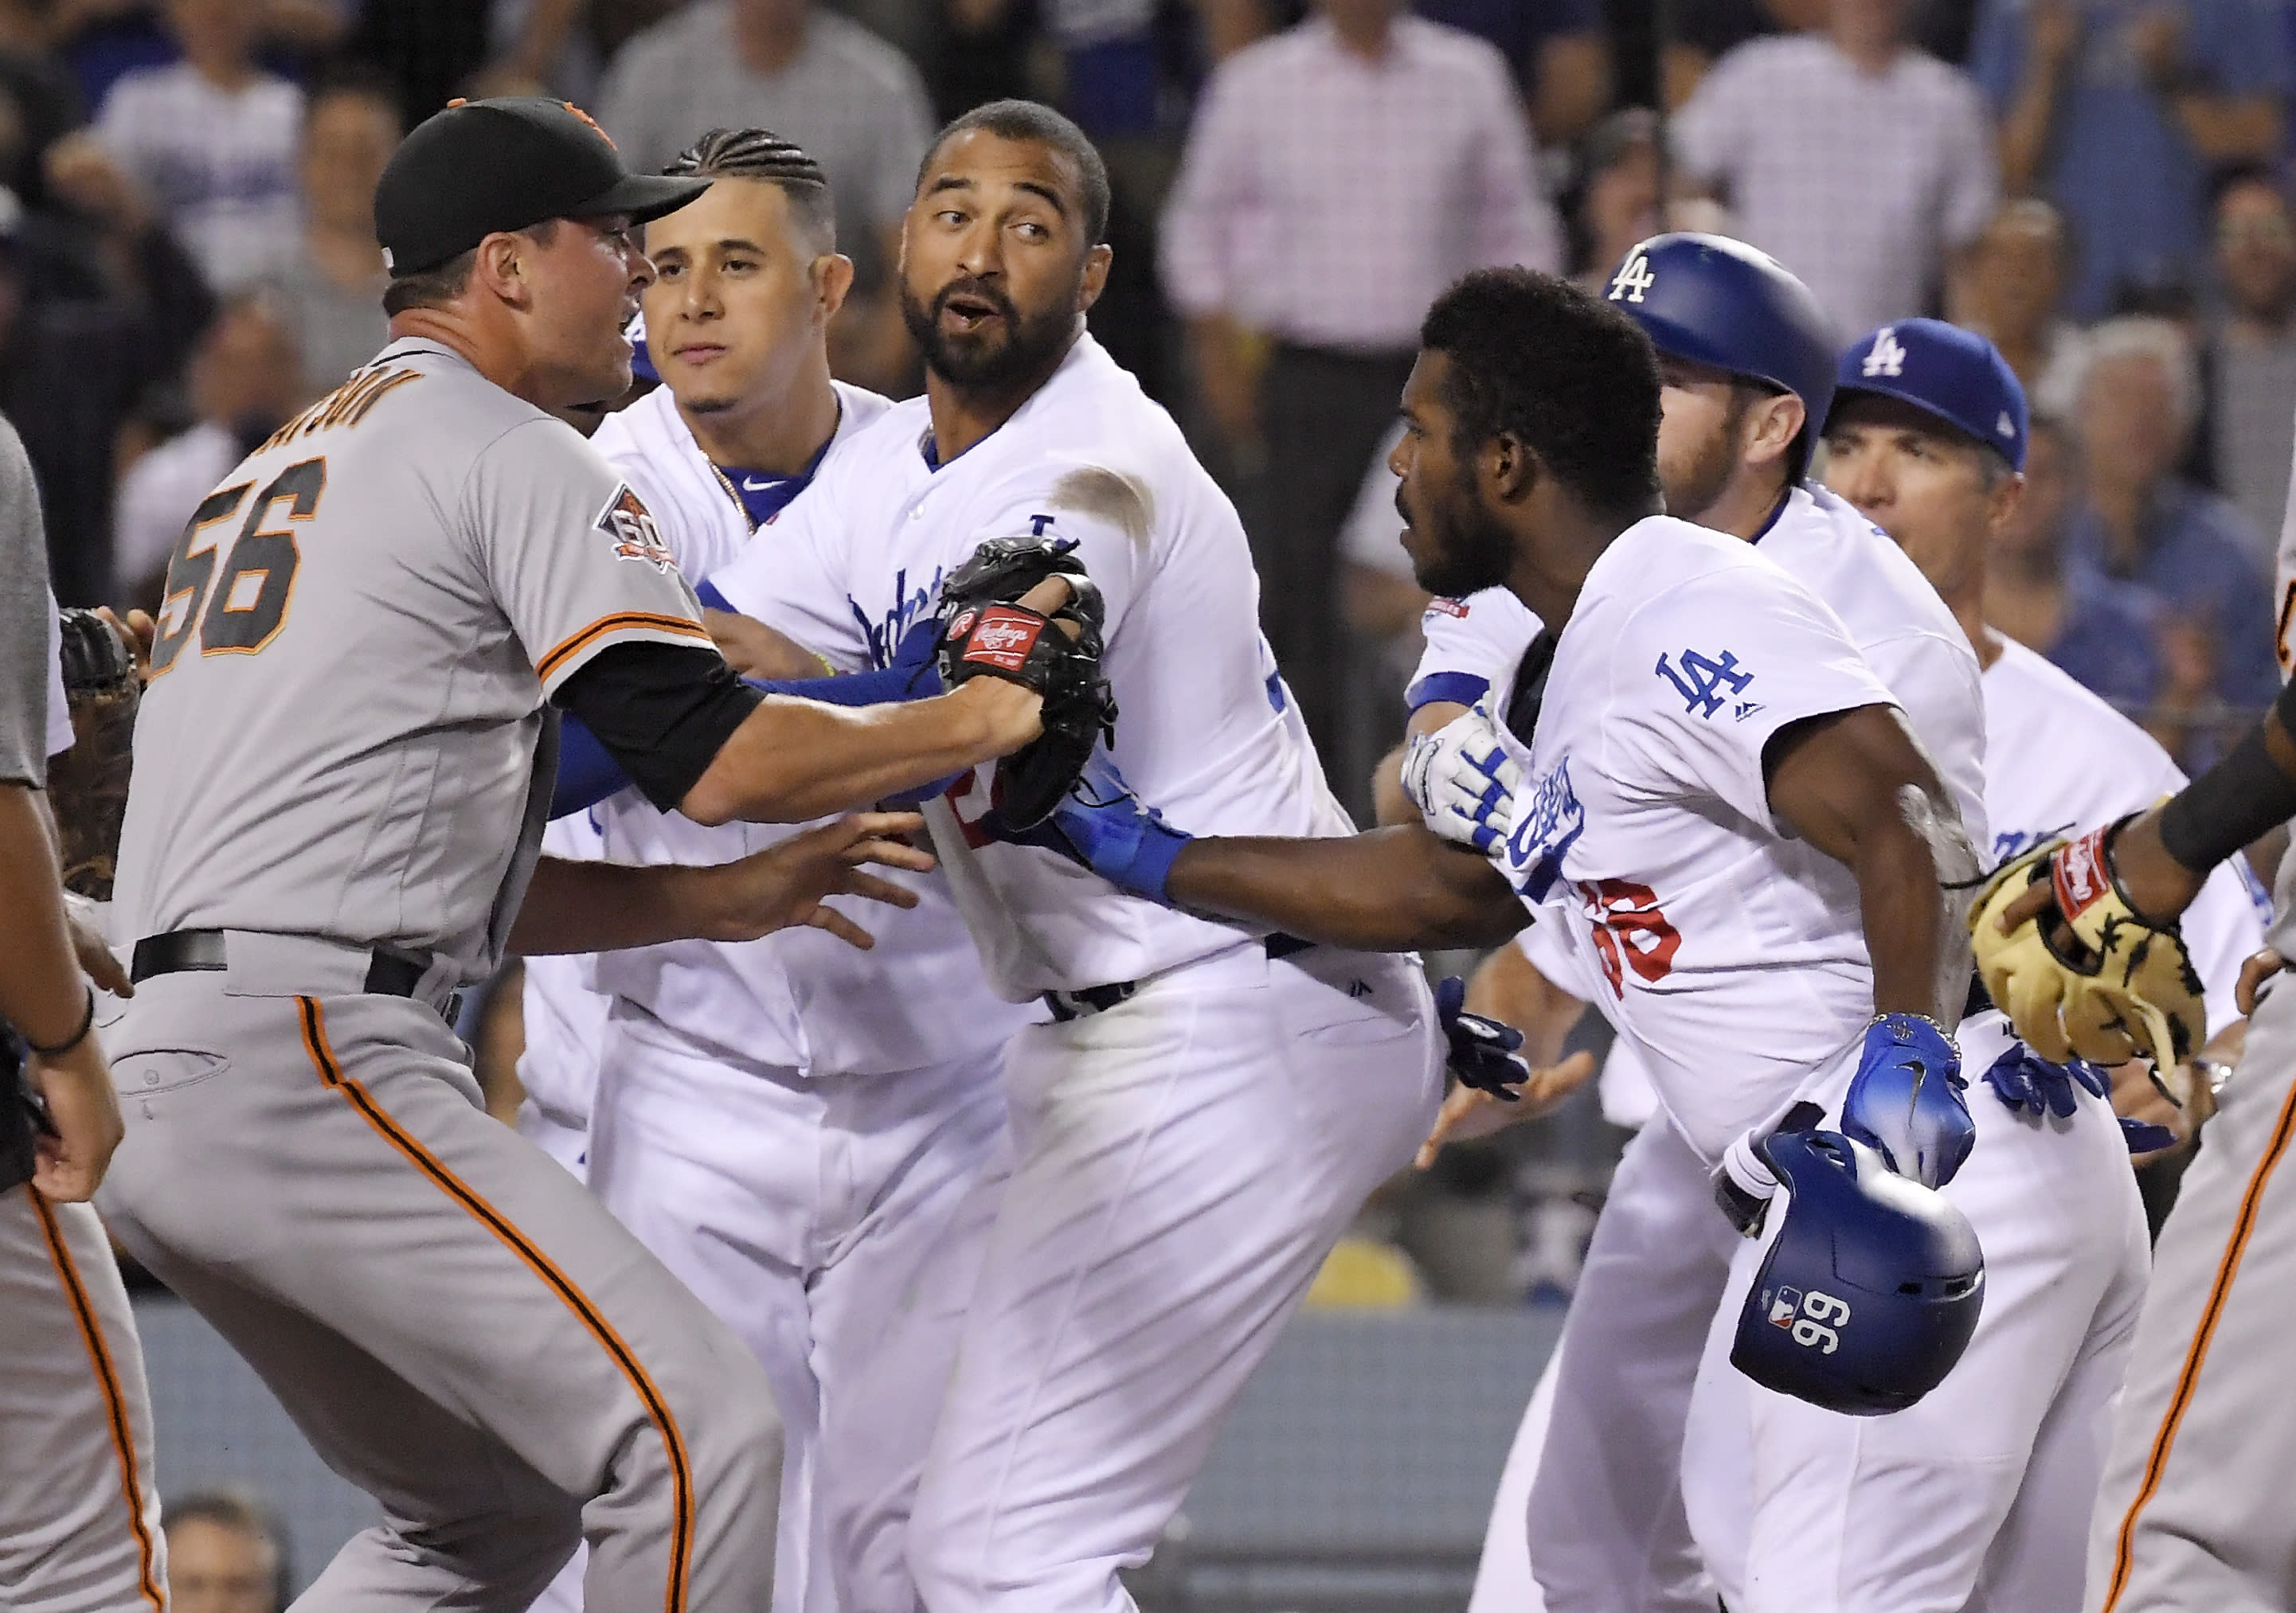 Puig picks up on Hundley before the Giants pass Dodgers